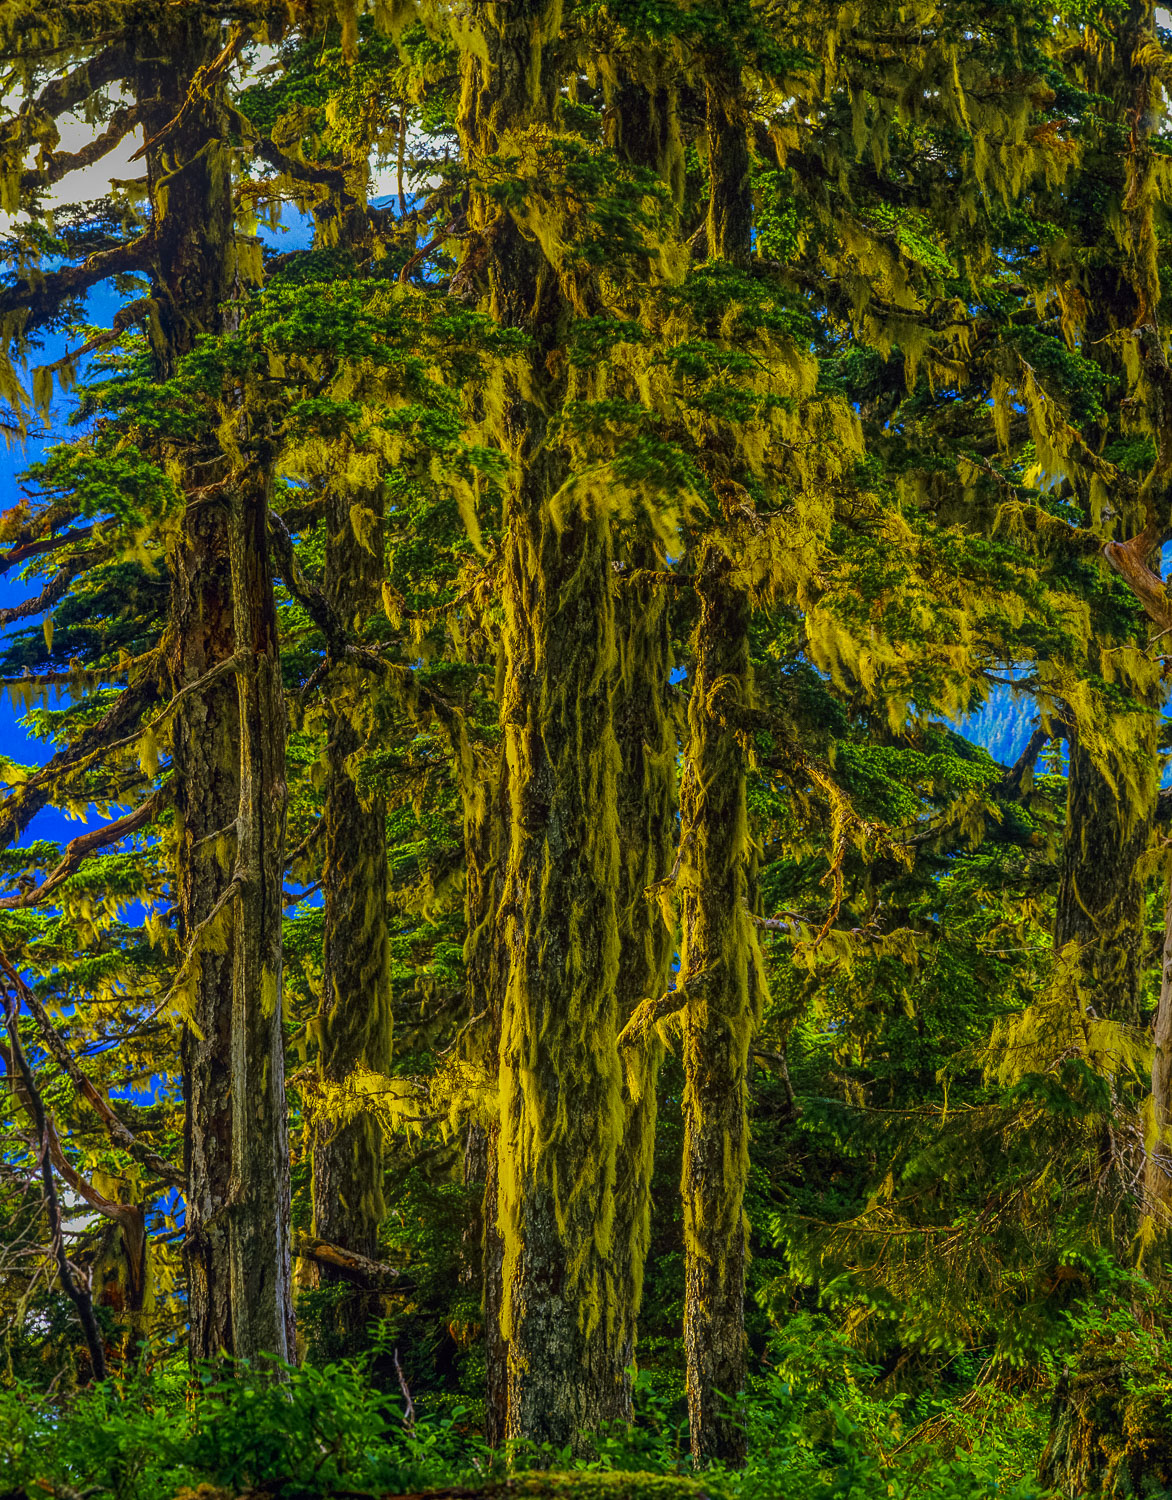 Lichen on Western Hemlock Trunks, Tongass National Forest, South